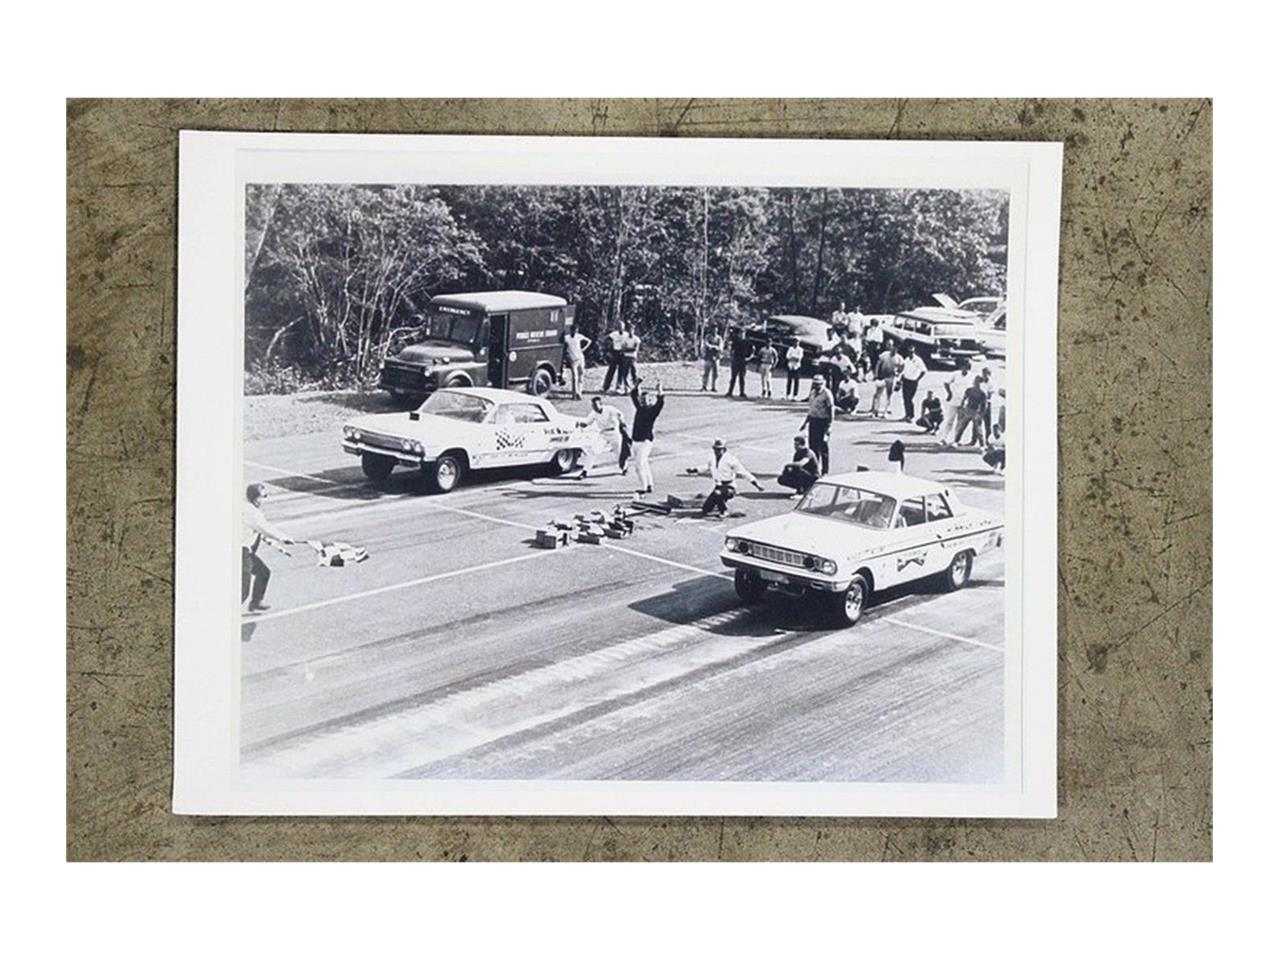 Large Picture of 1963 Impala - $360,000.00 Offered by a Private Seller - QK96